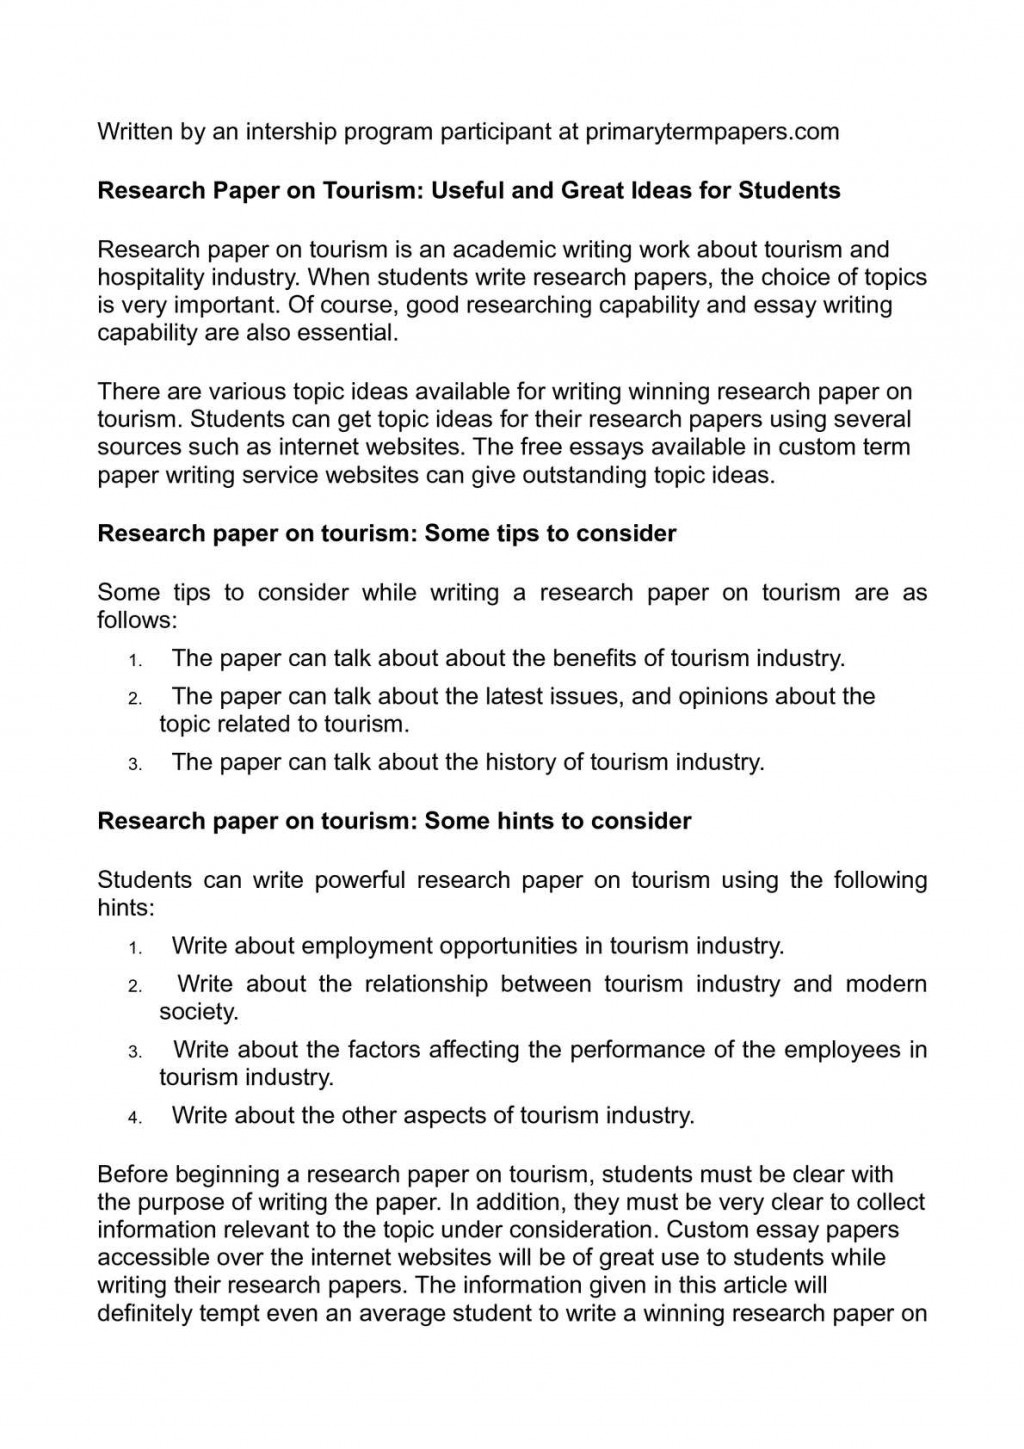 009 Research Paper Ideas For Fascinating Papers In Computer Science Middle School Topic High Large